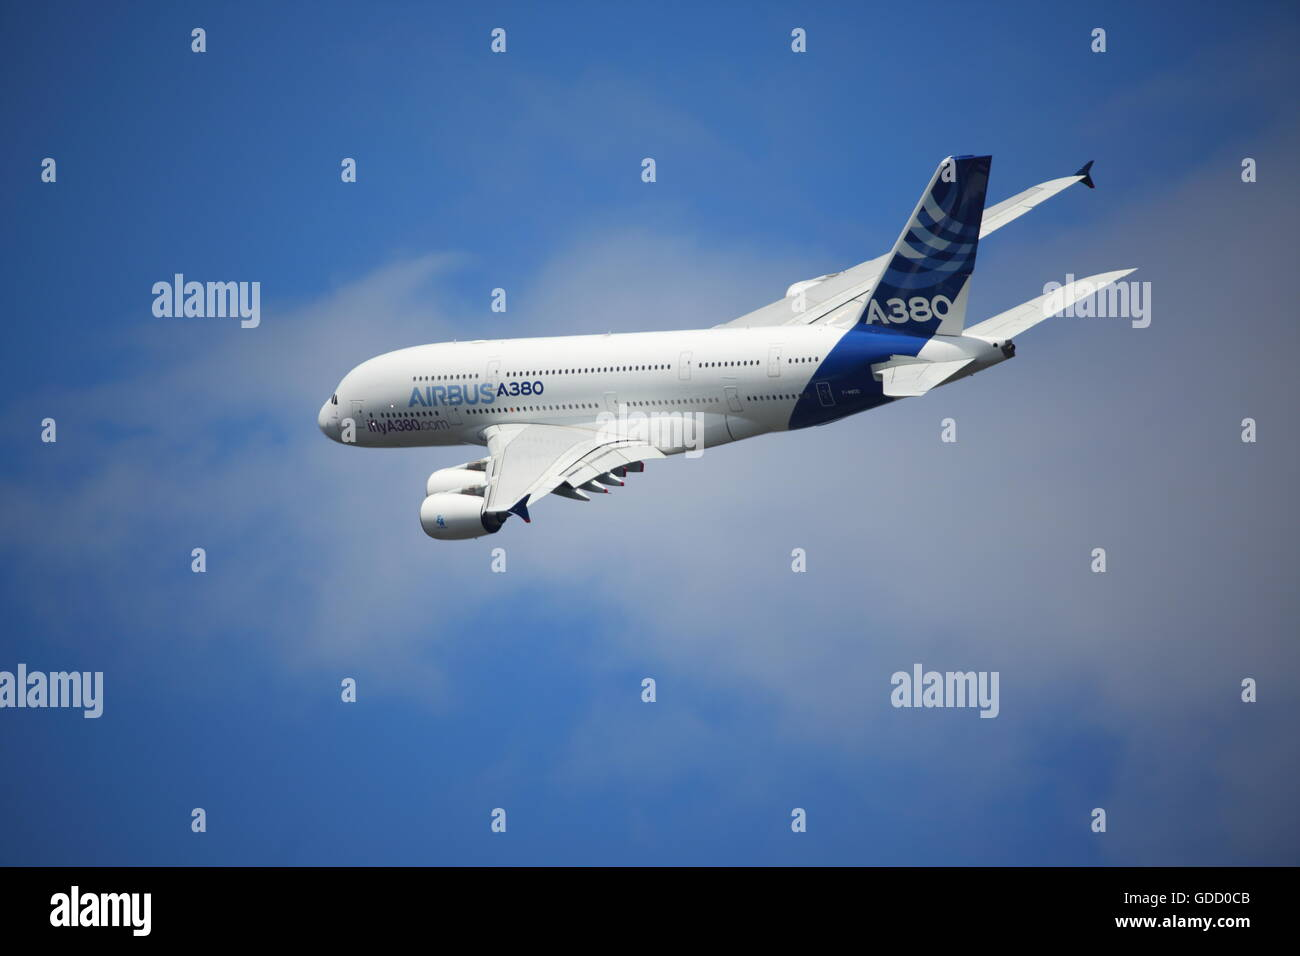 The Airbus A380 F-WWDD displayed its impressive maneuverability at the Farnborough Airshow - Stock Image